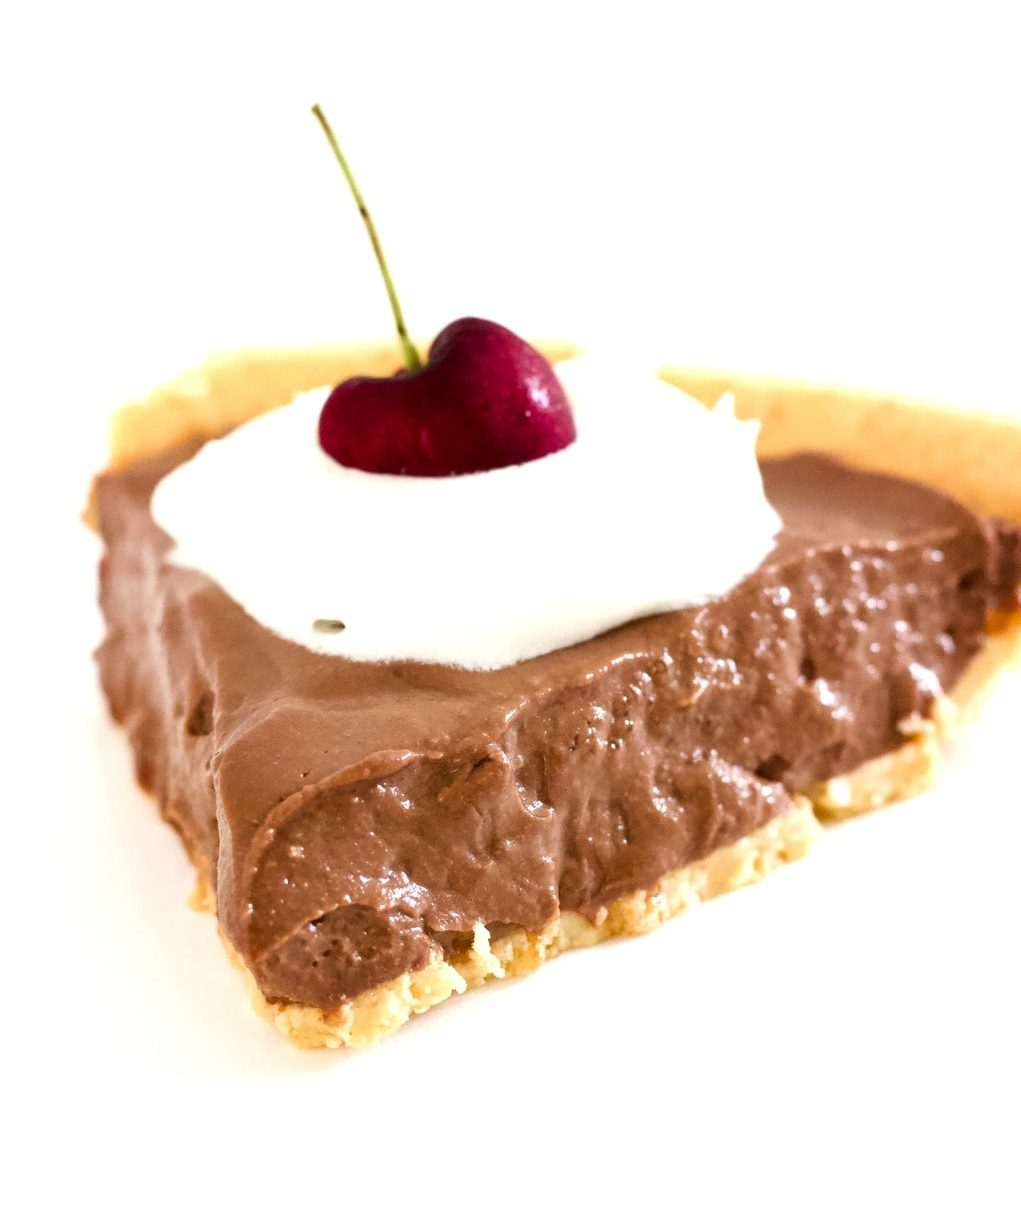 This Keto Vegan Chocolate Cream Pie is absolutely AMAZING! It's super easy to make and requires less than 10 minutes to throw together. Gluten-free, dairy-free, oil-free, low-carb, and just pure chocolate deliciousness.